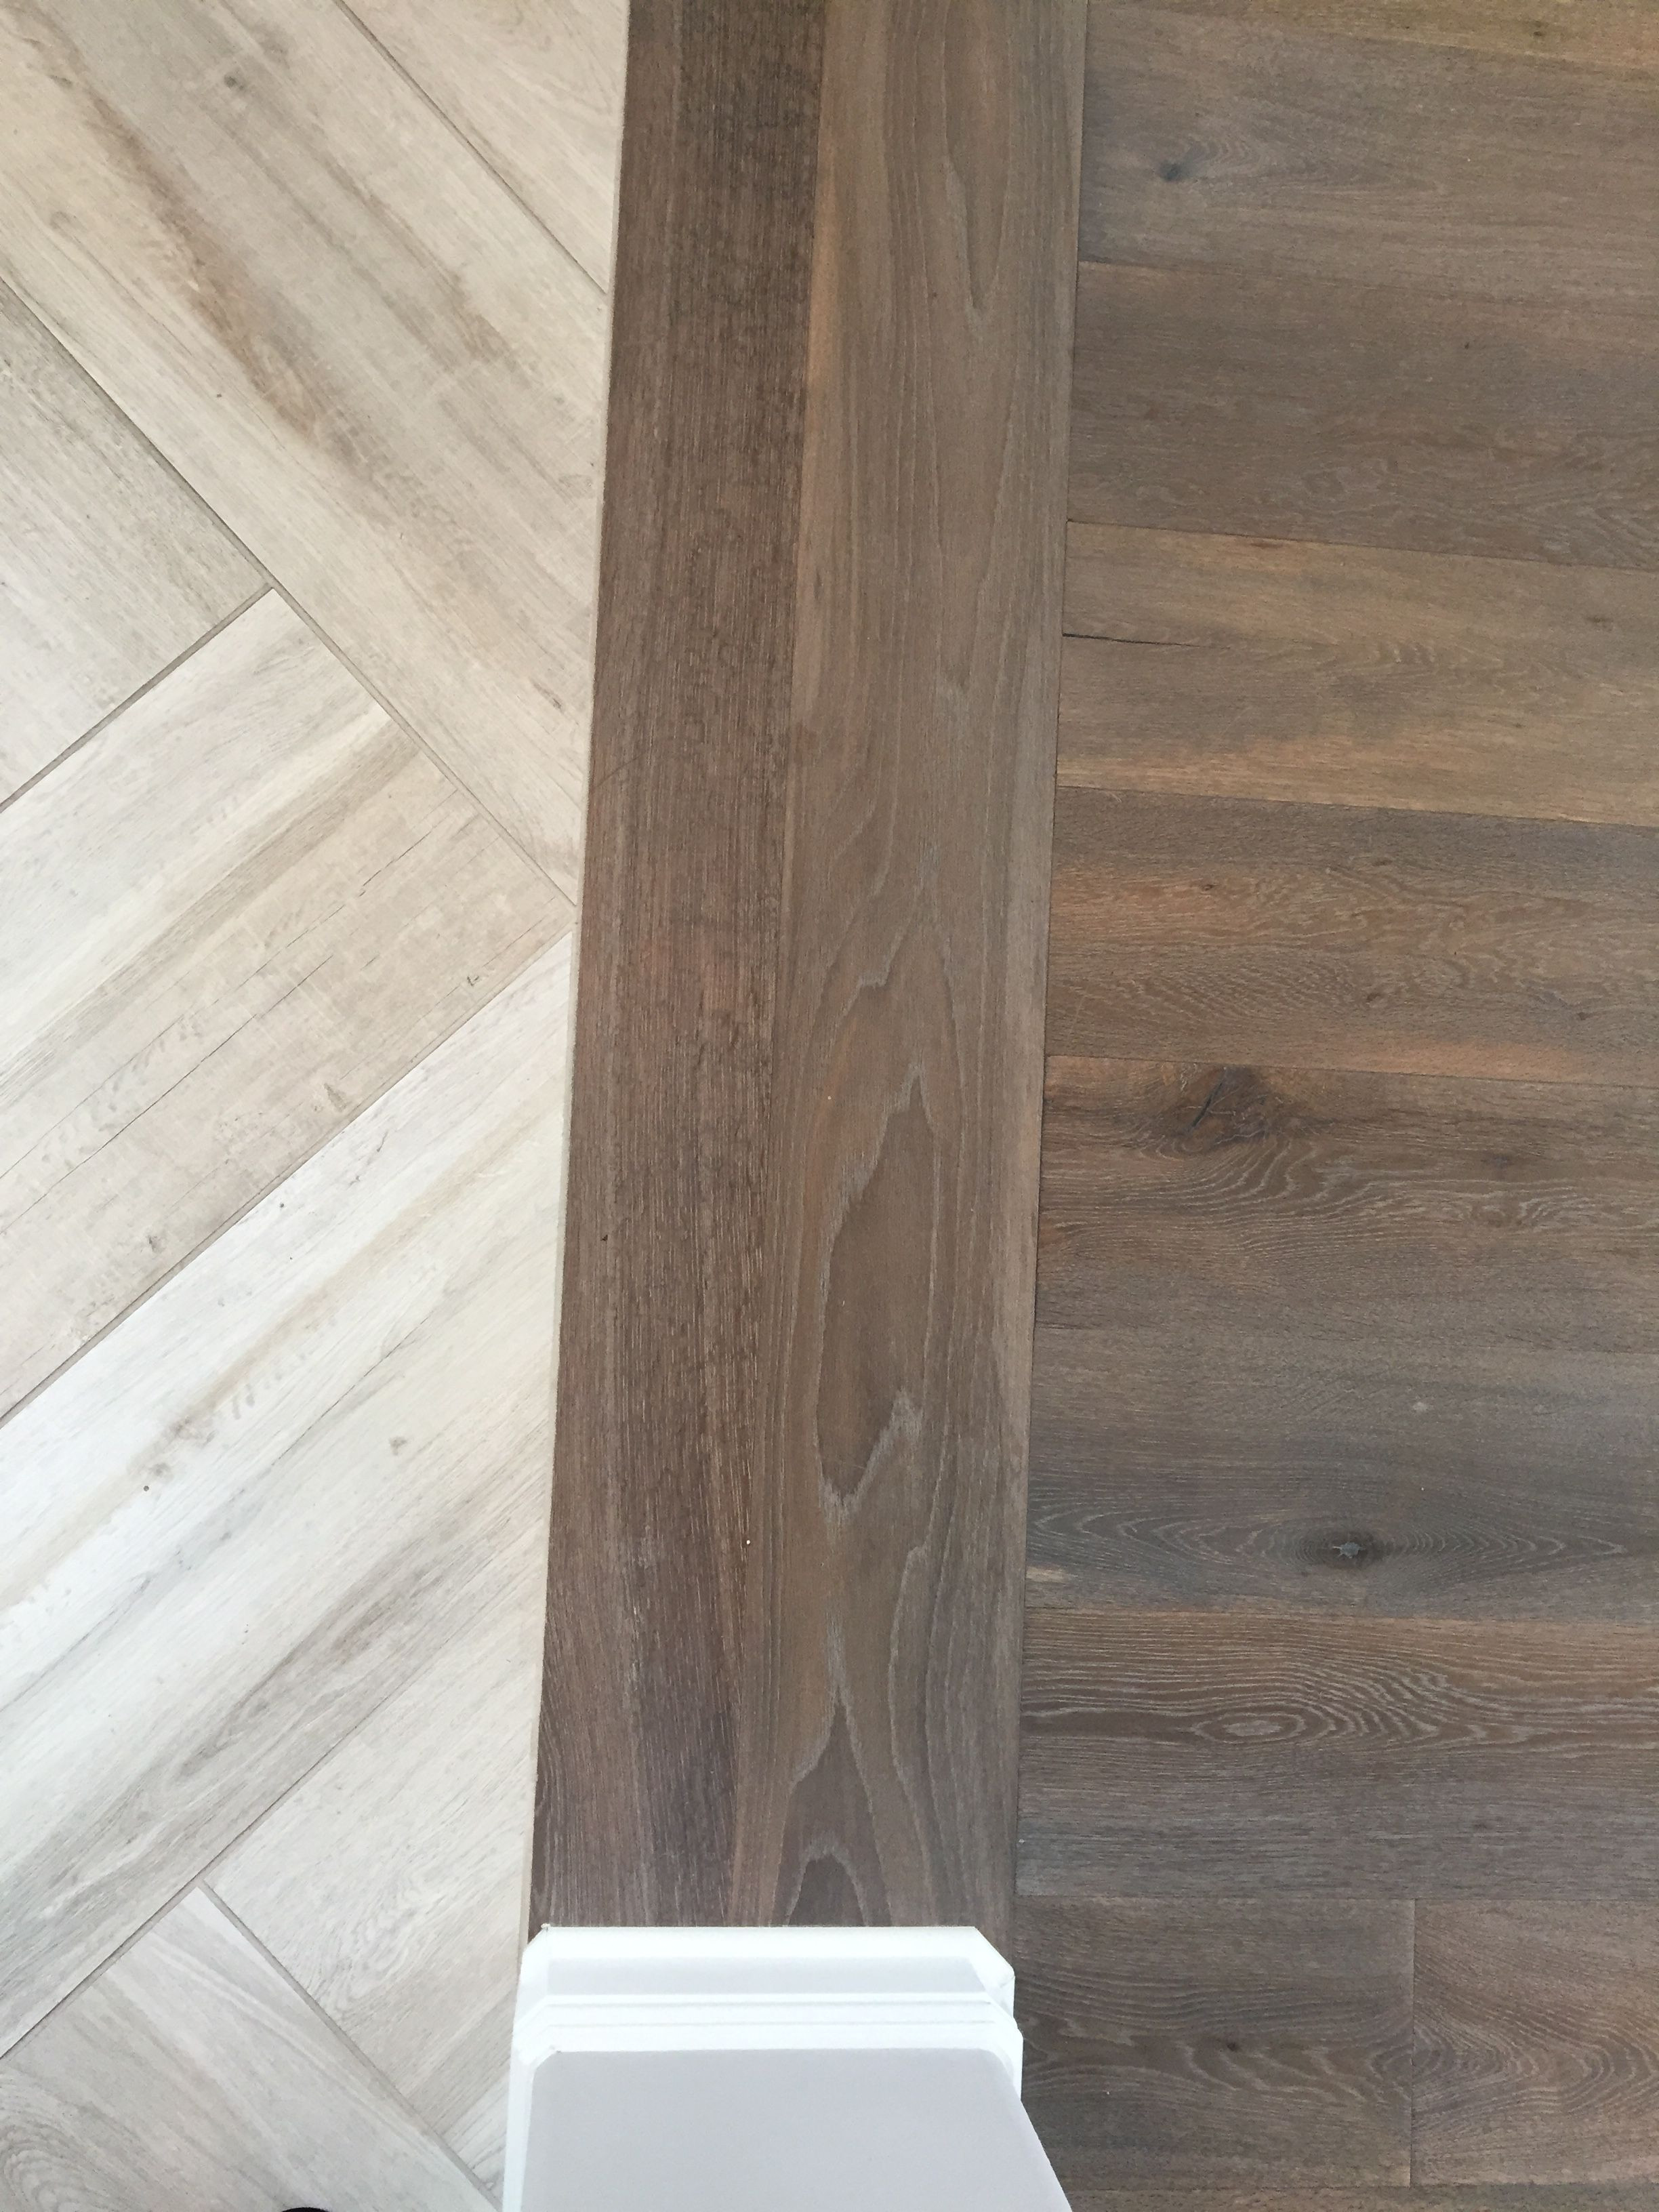 Hardwood Floor Examples Of Floor Transition Laminate to Herringbone Tile Pattern Model Throughout Floor Transition Laminate to Herringbone Tile Pattern Herringbone Tile Pattern Herringbone Wood Floor